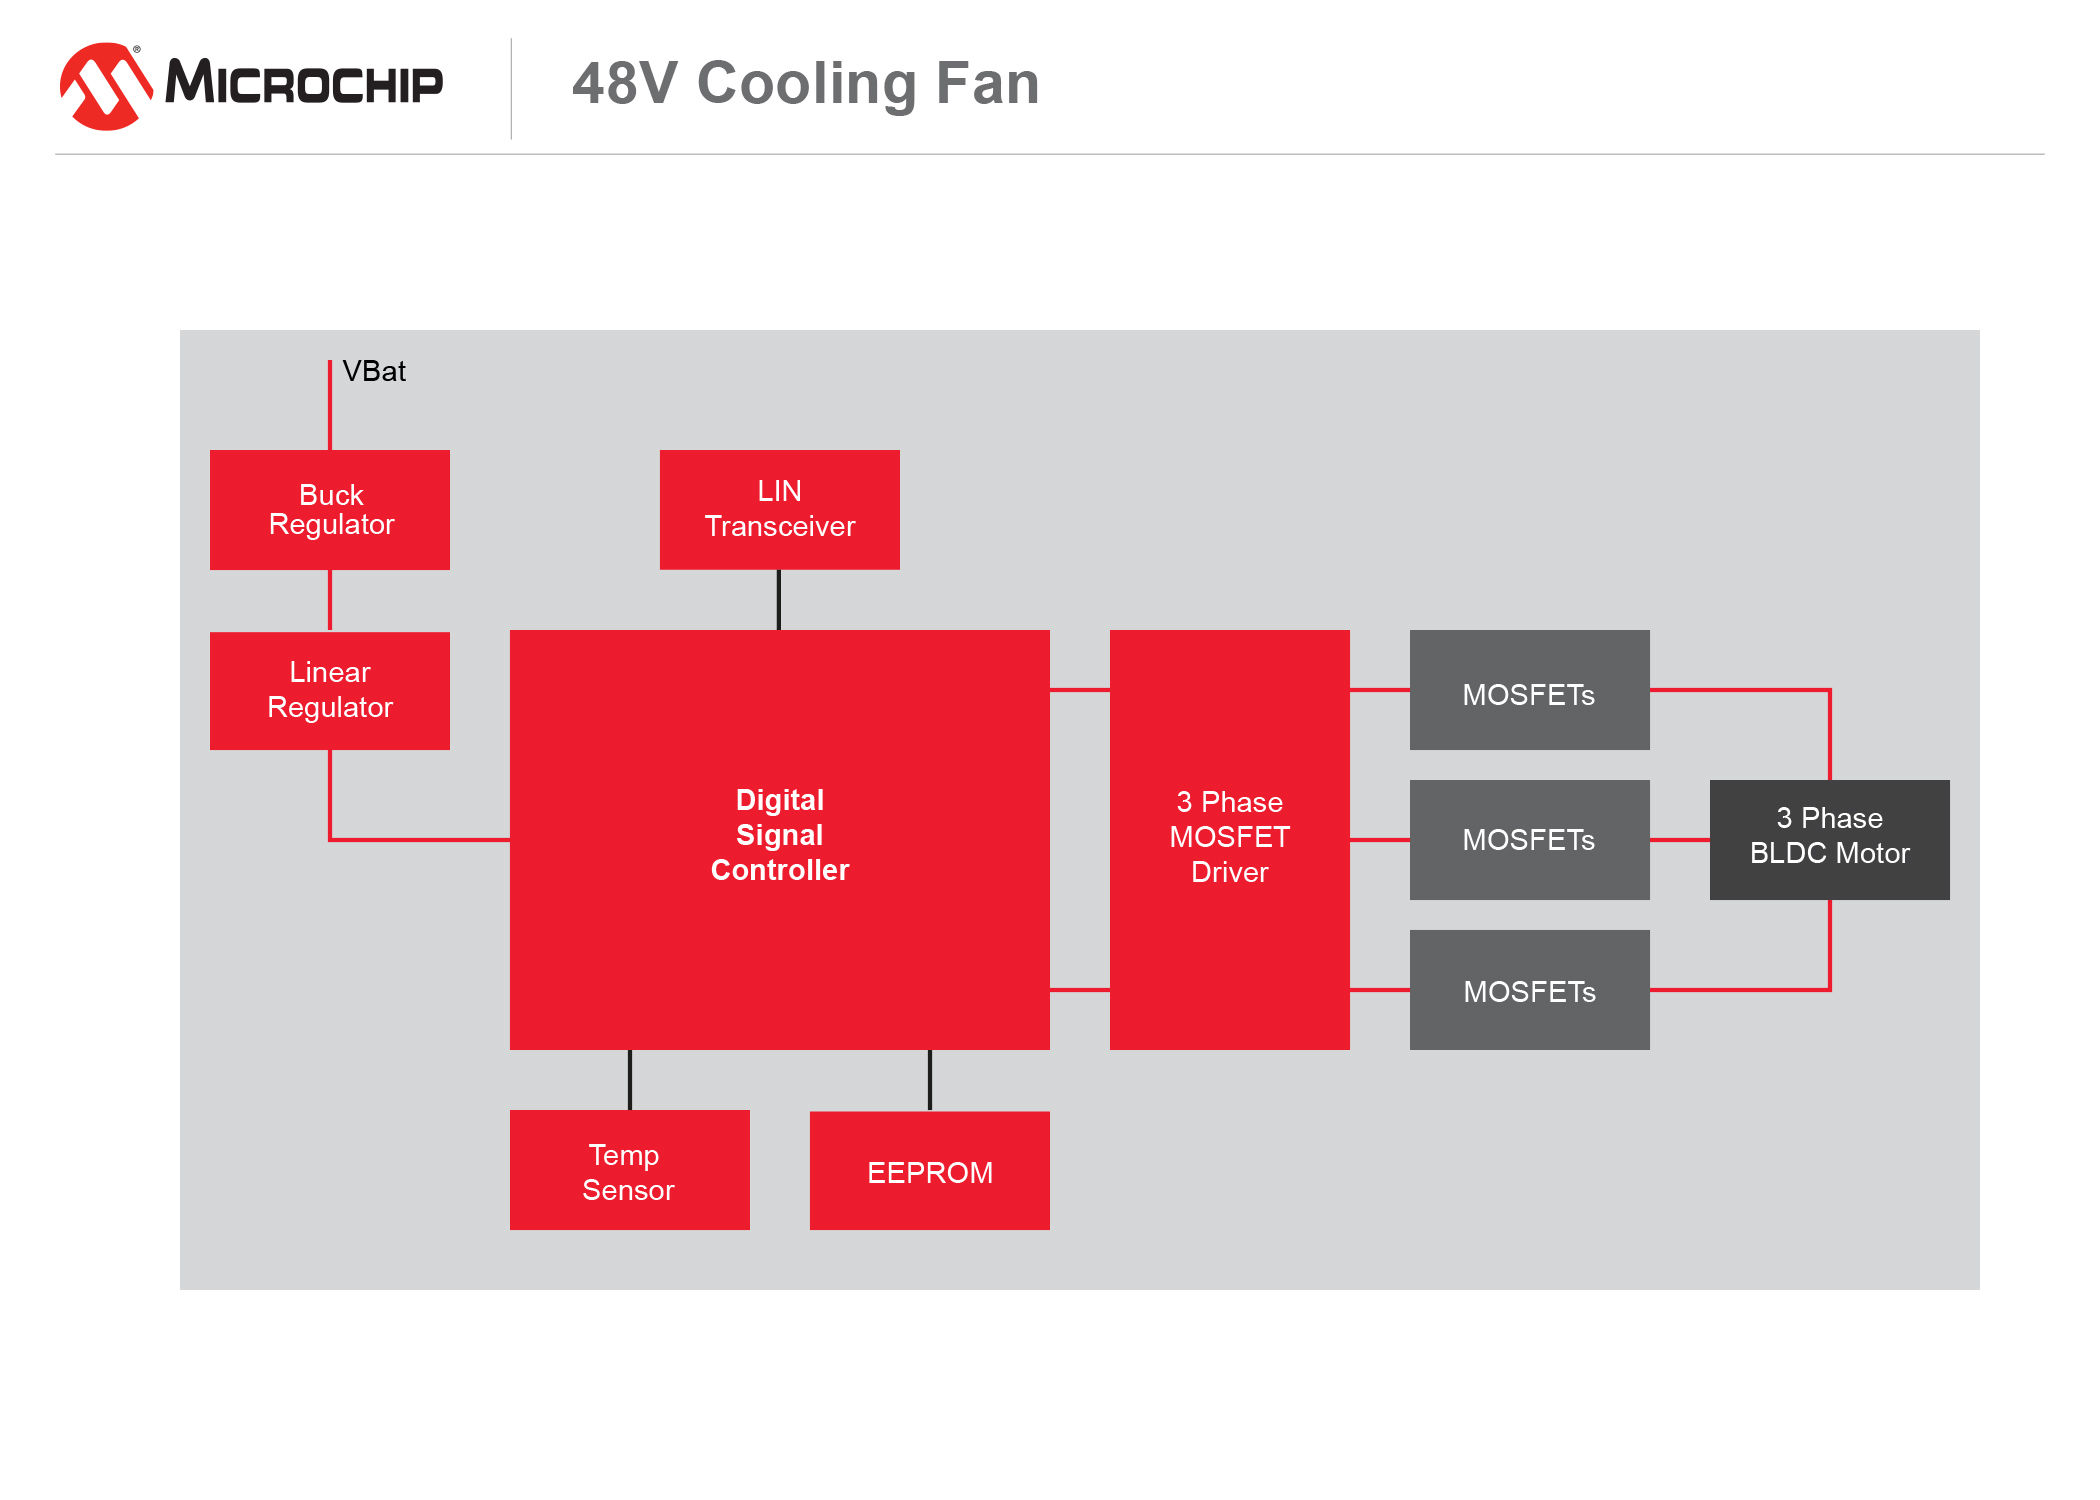 48V Cooling Fan diagram